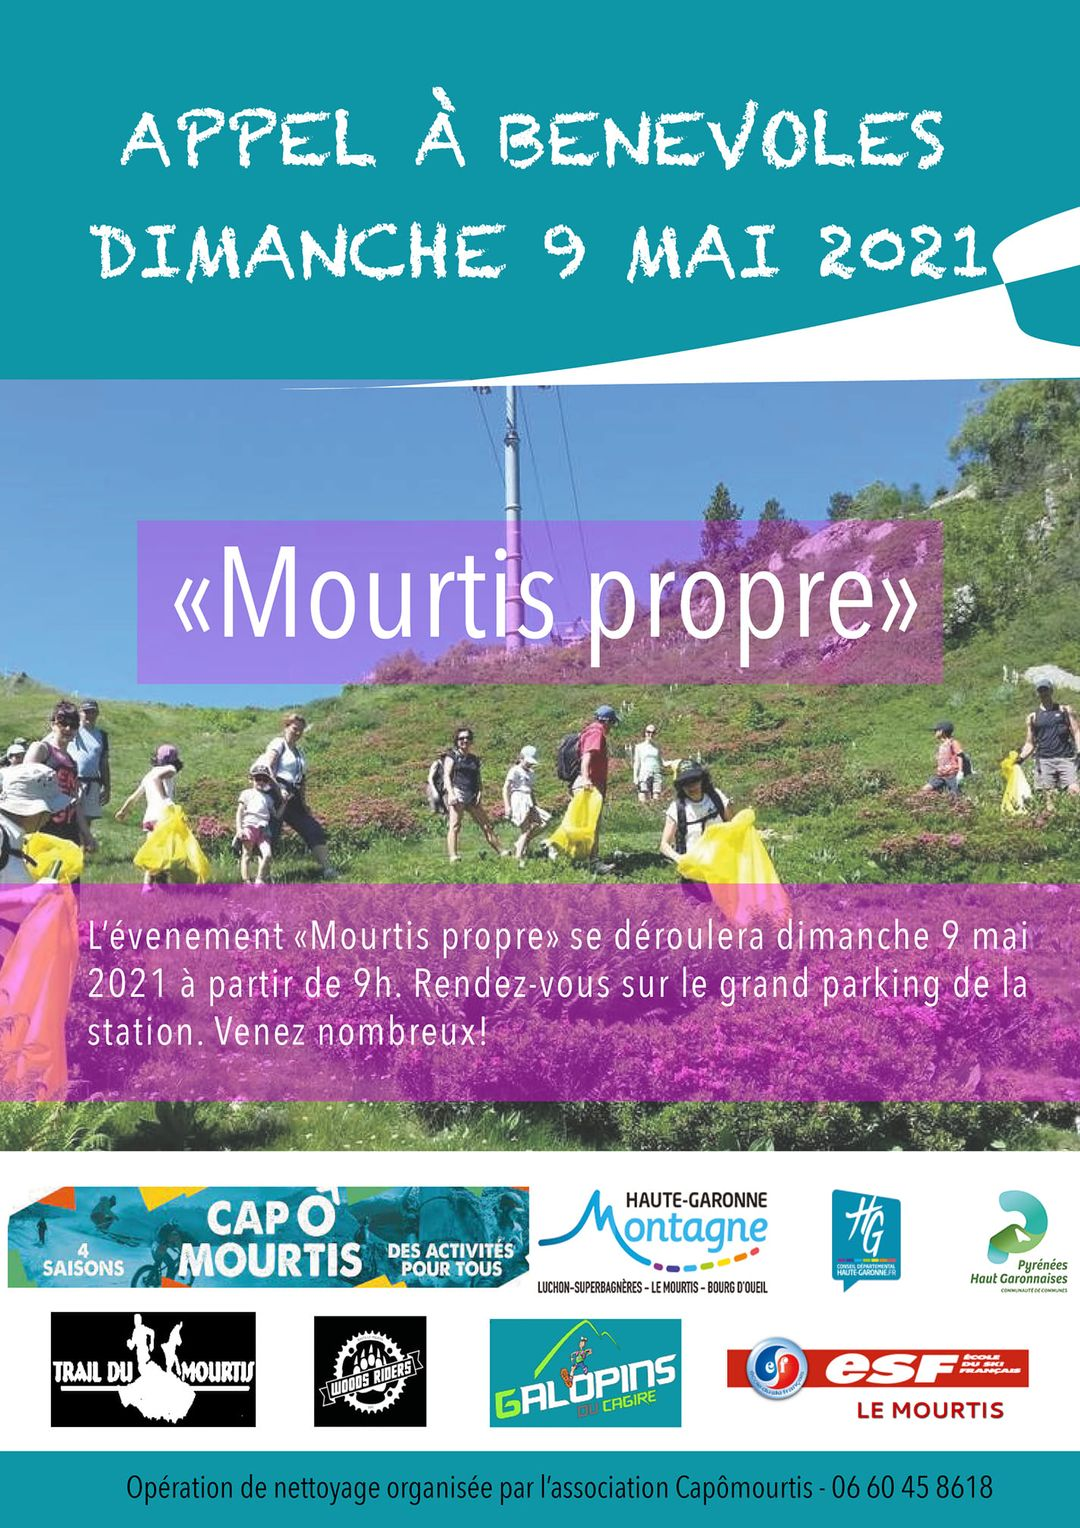 Mourtis propre